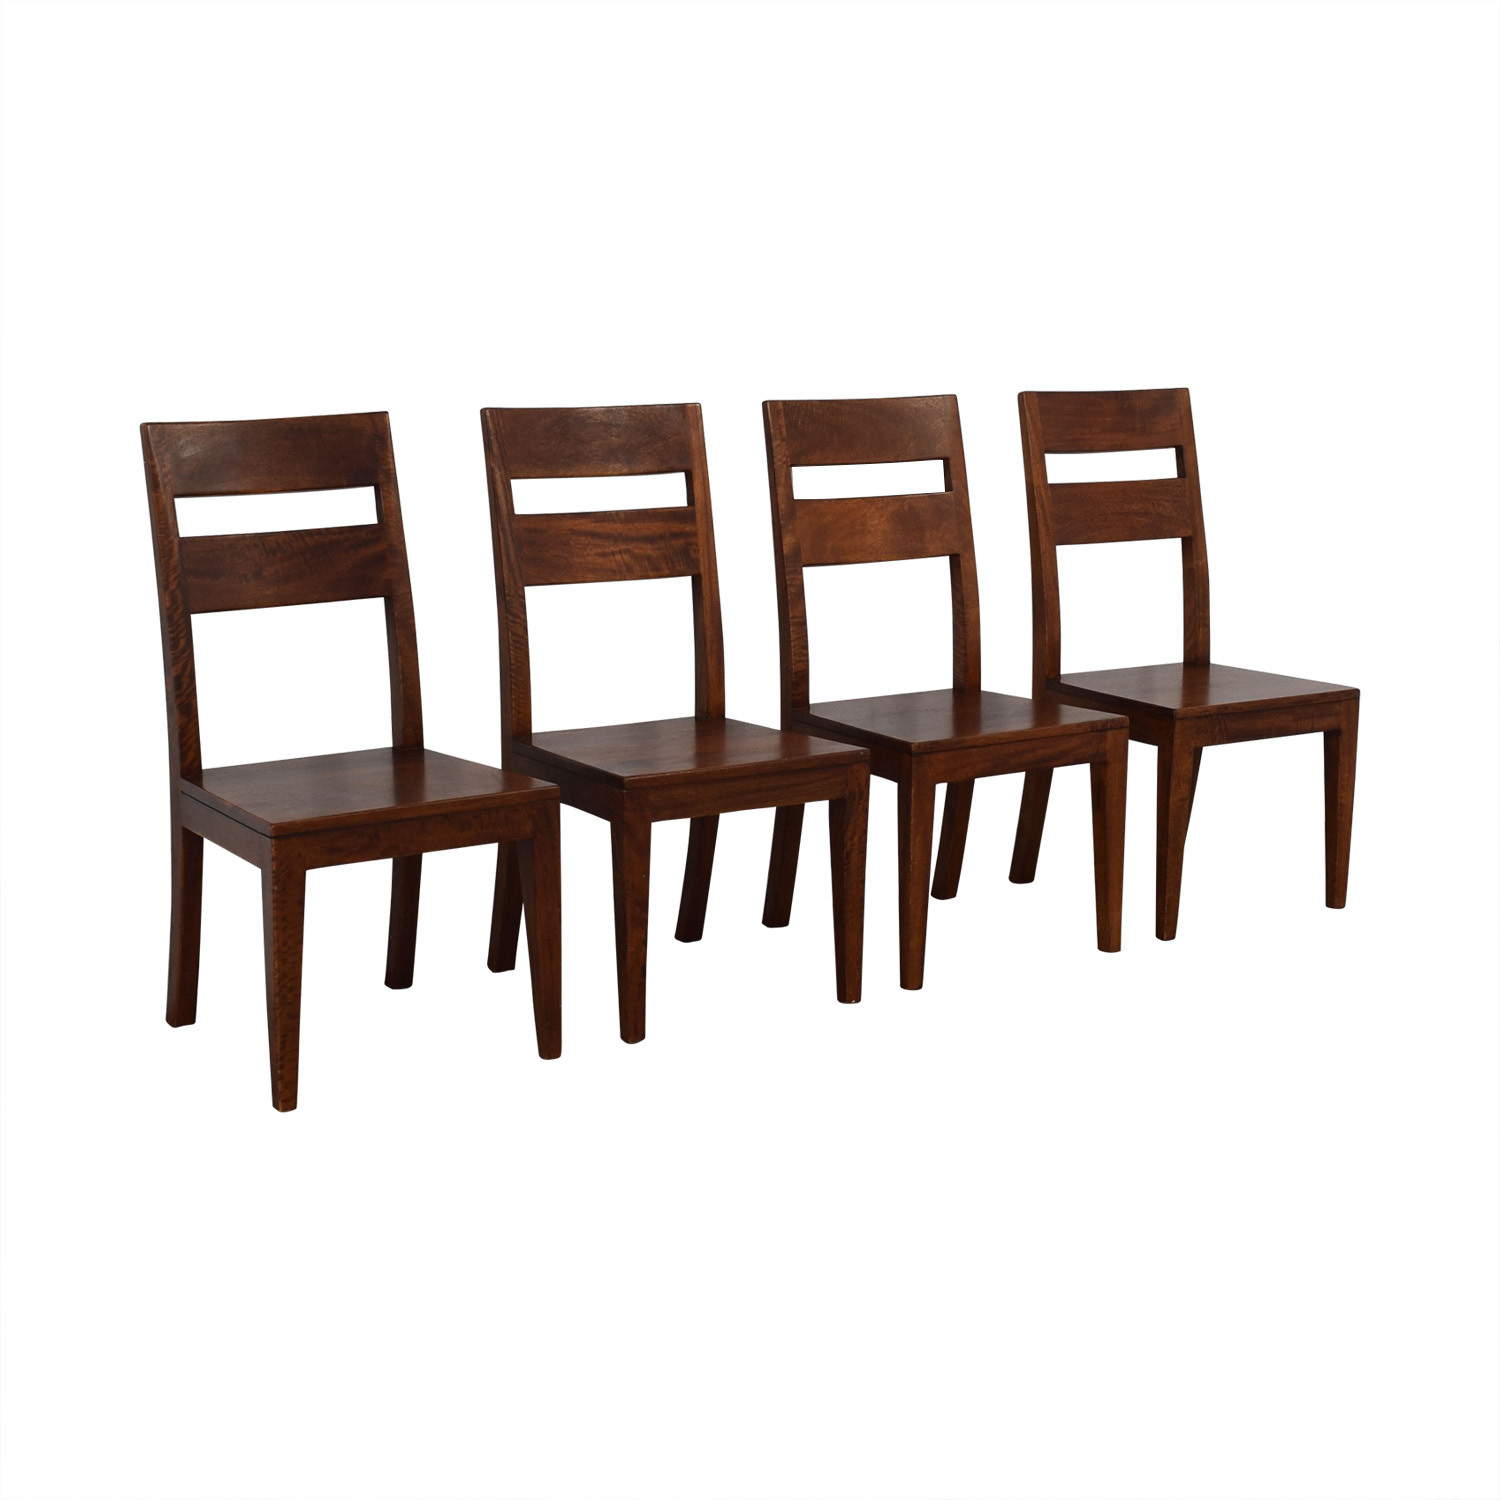 Crate & Barrel Crate & Barrel Basque Chairs on sale